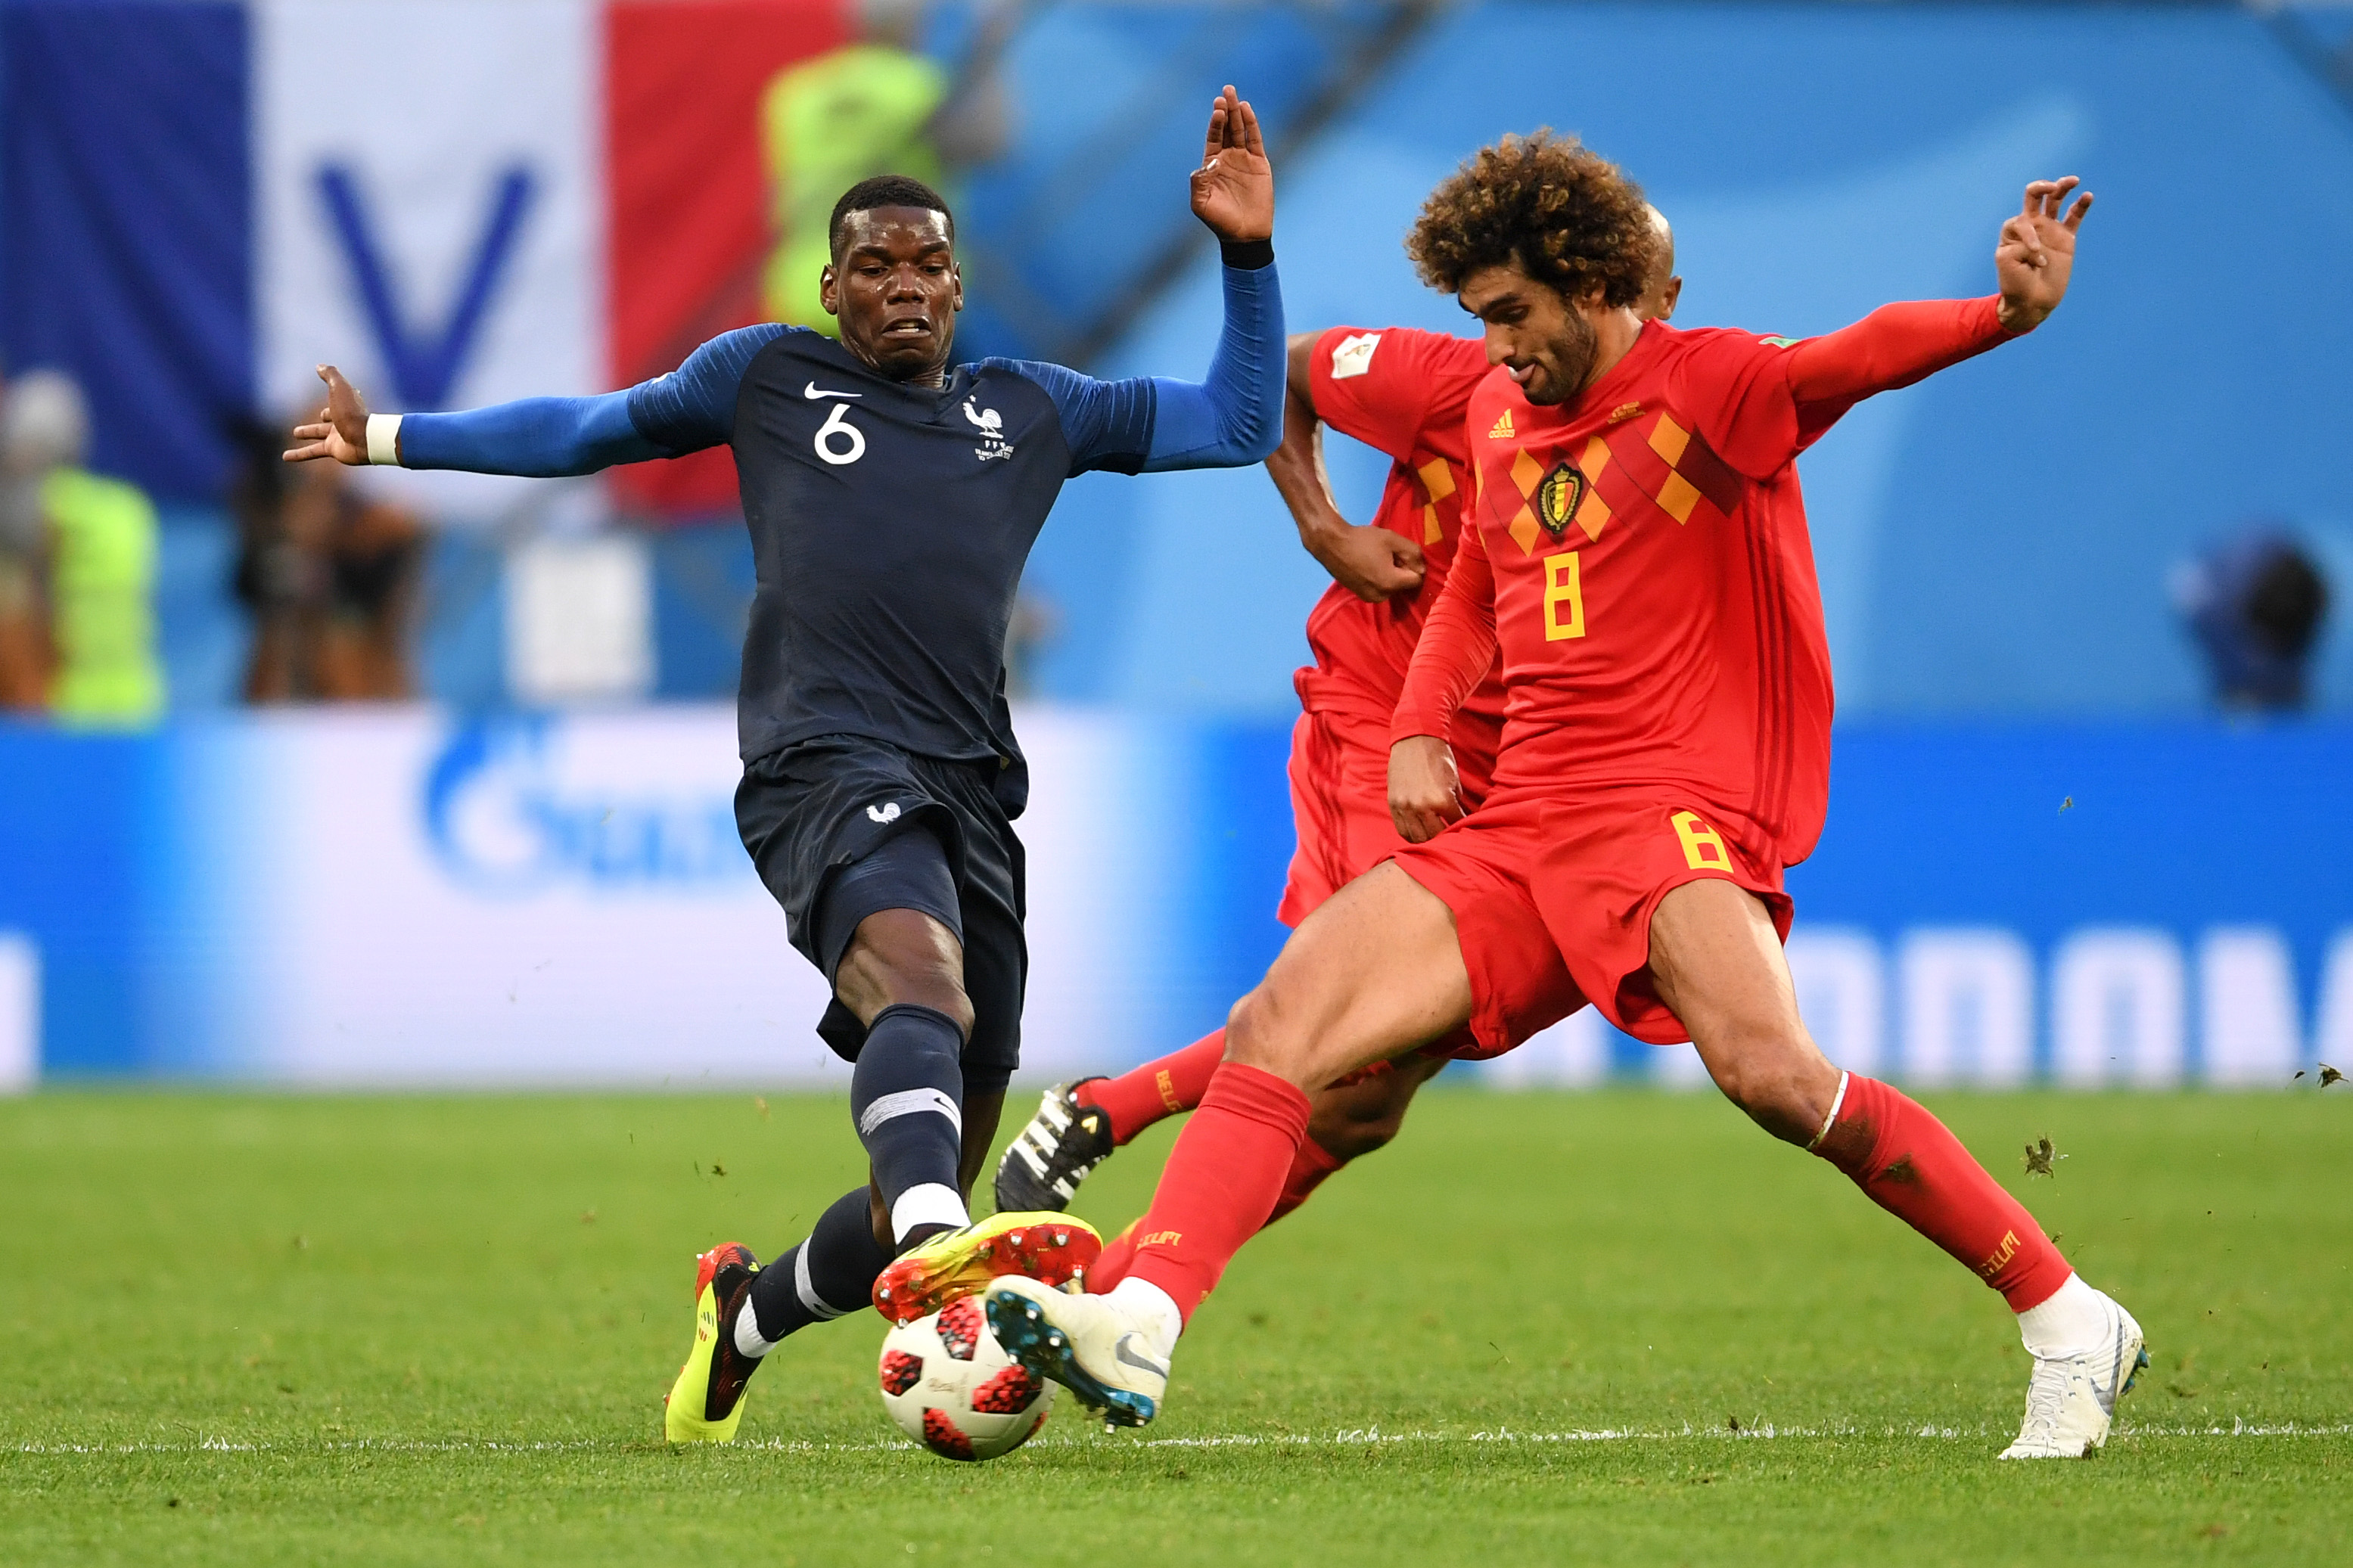 France's Pogba trolls England with 'It's Coming Home' line